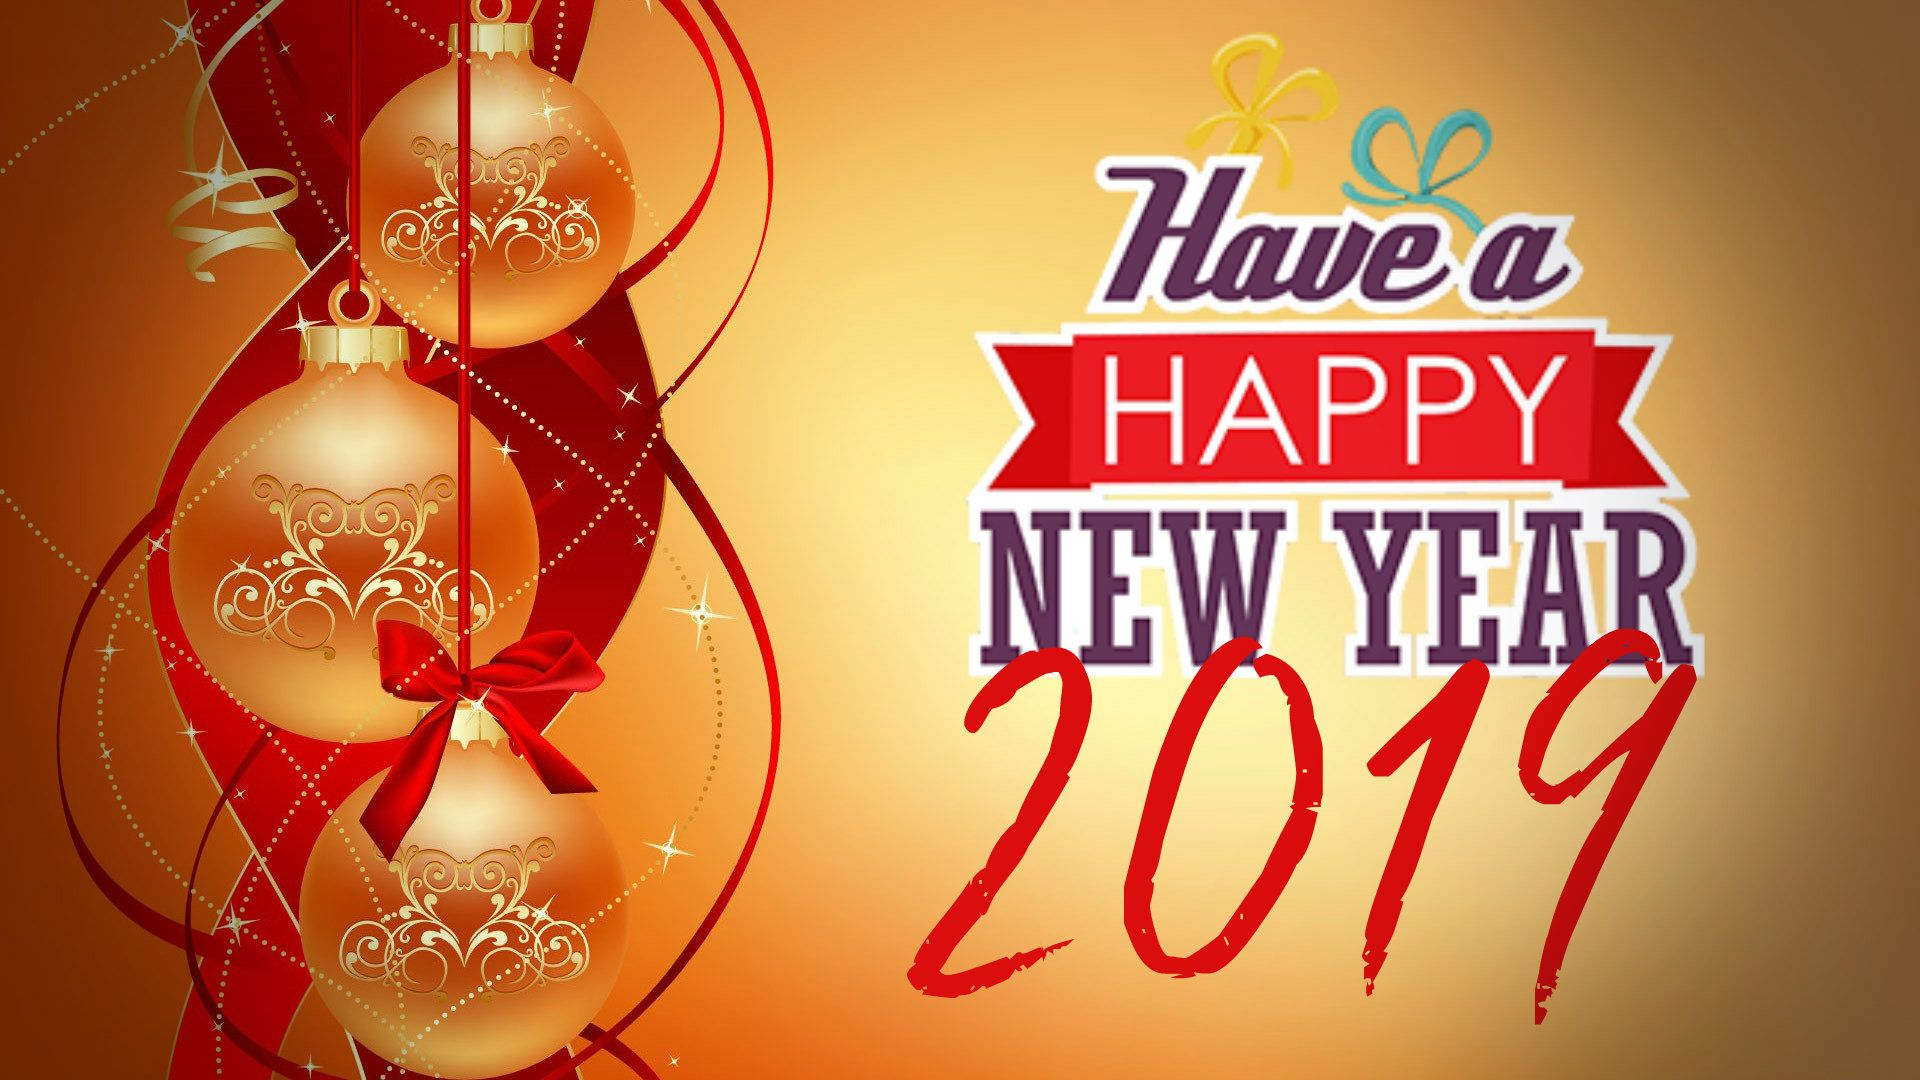 download happy new year hd images wallpapers